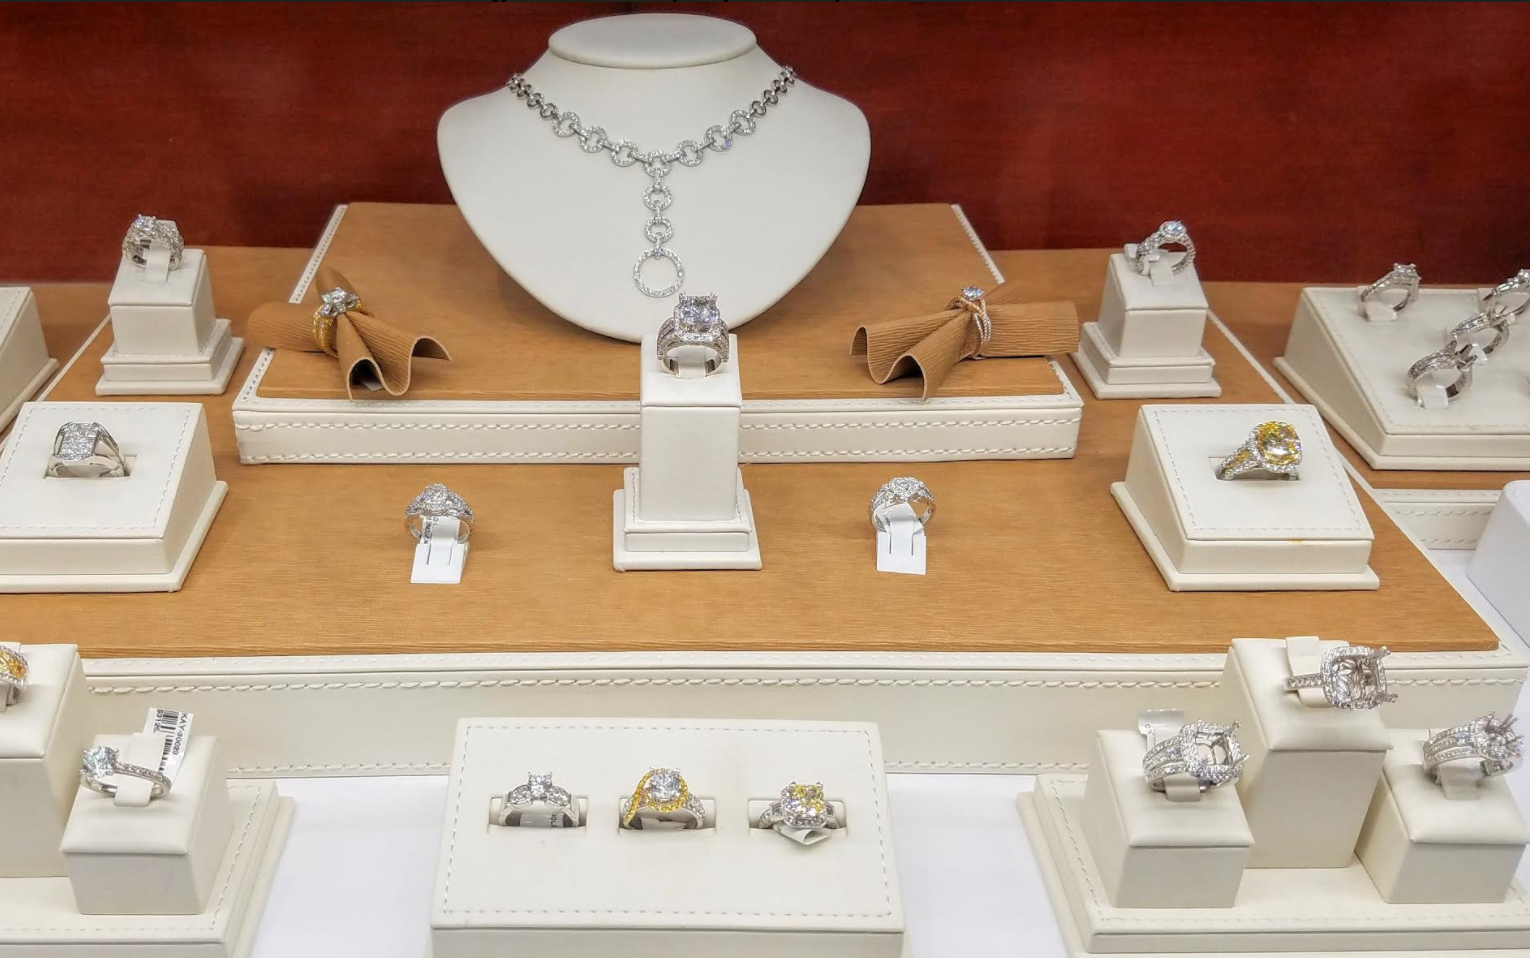 Jewelry display for what are clearly some very expensive diamond jewelry pieces, especially many diamond rings by Madani.